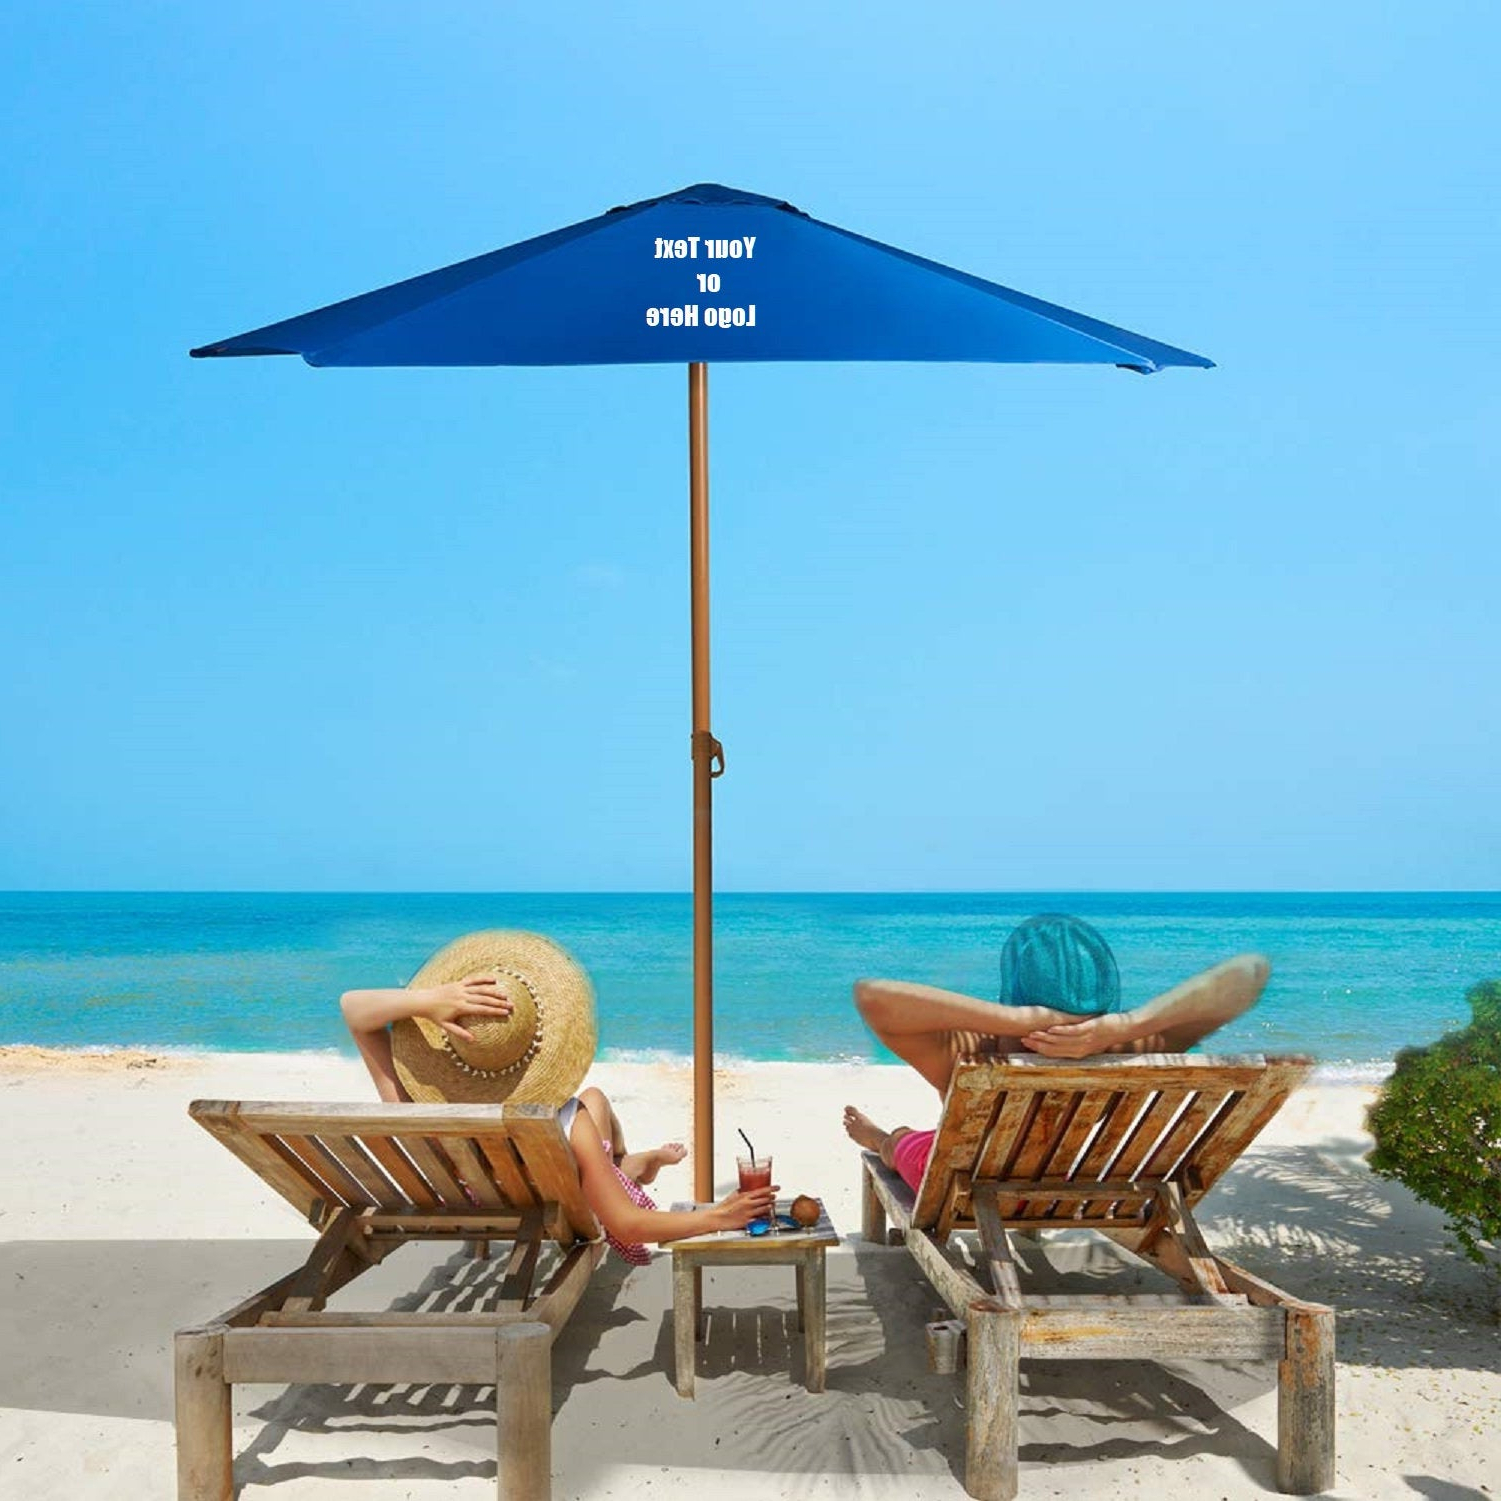 Most Recently Released Custom Personalized Sturdy 8ft Shade Vented Patio Umbrella Aluminum Poles With Polyester Canopy Portable For Beach Outdoor Uv Protection Within Bricker Market Umbrellas (View 16 of 20)